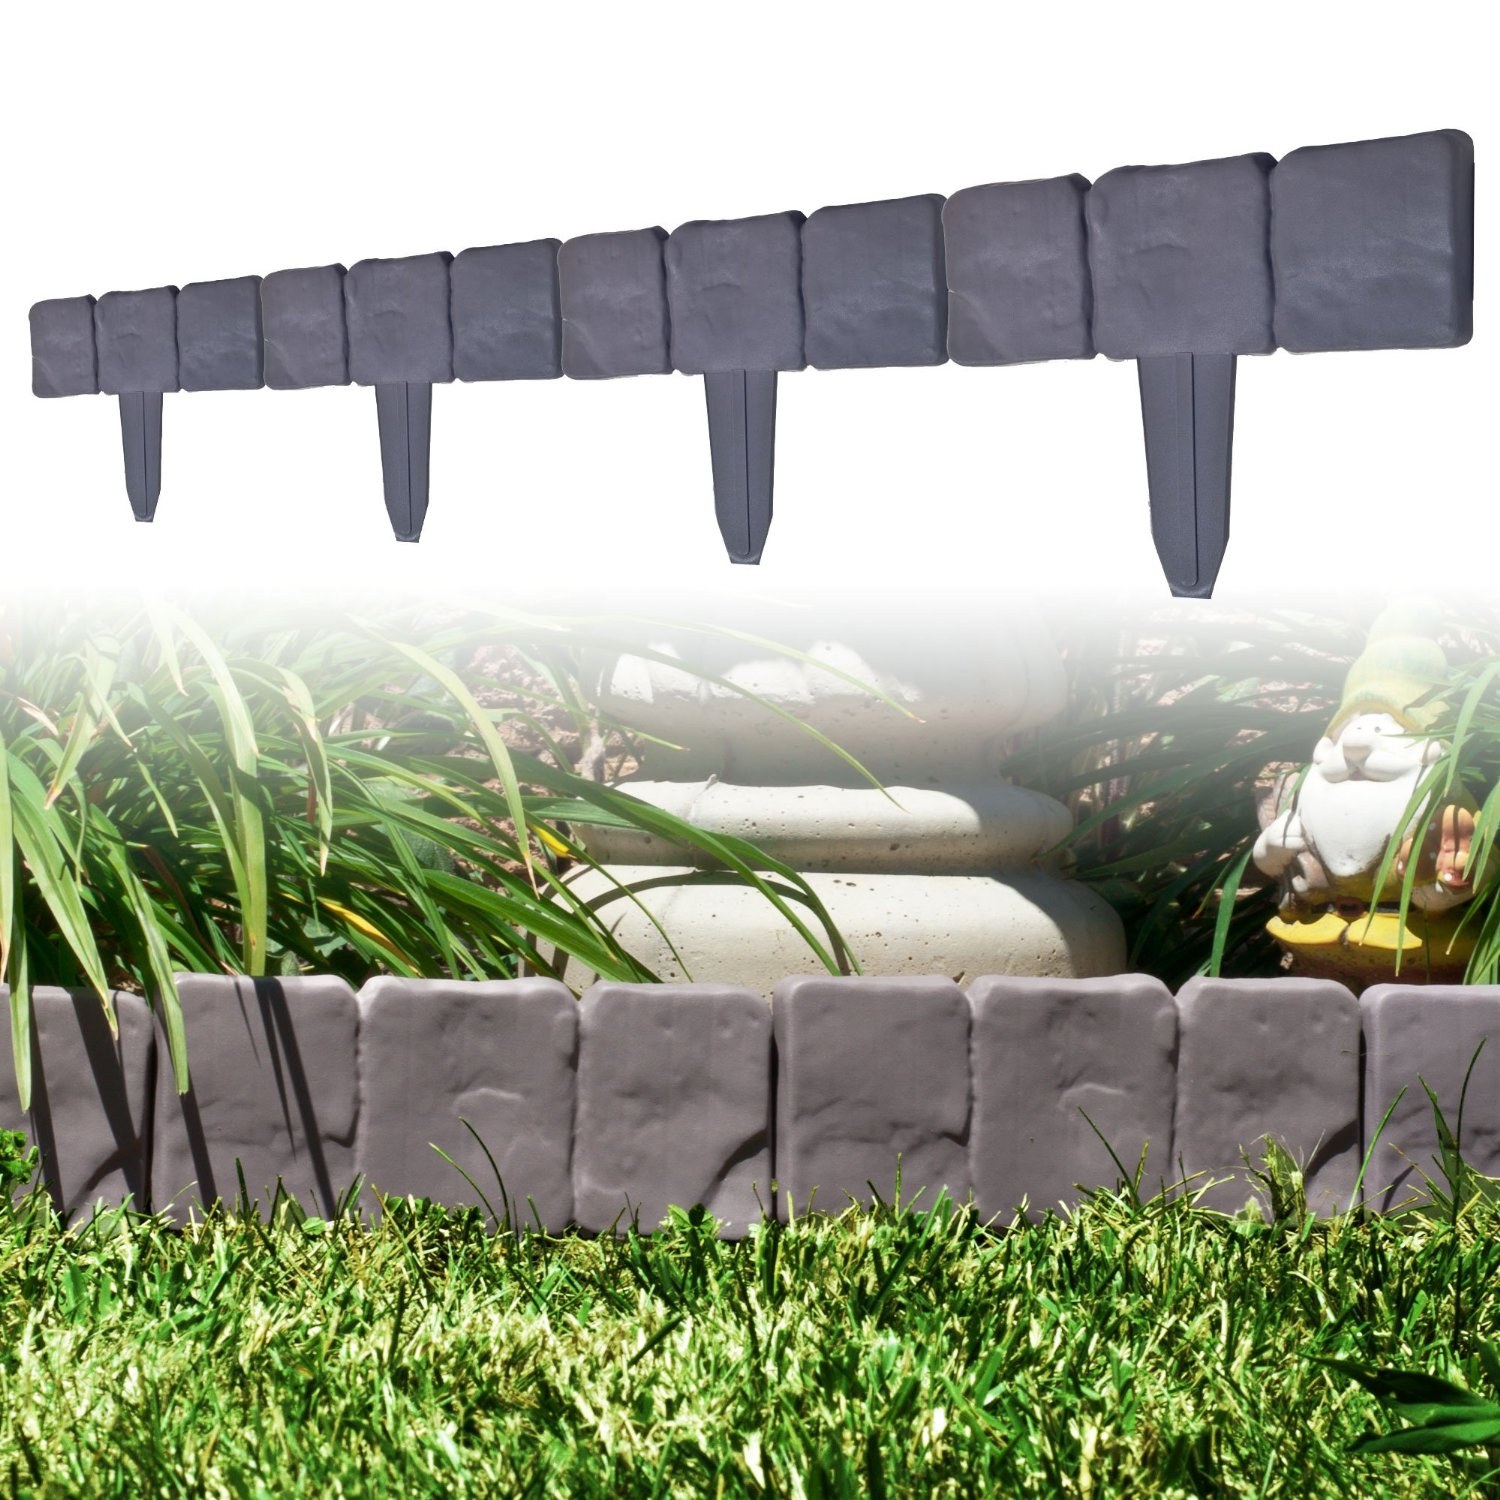 Garden Edging Border Decorative Flower Bed For Landscaping Stone Trim 10 Piece